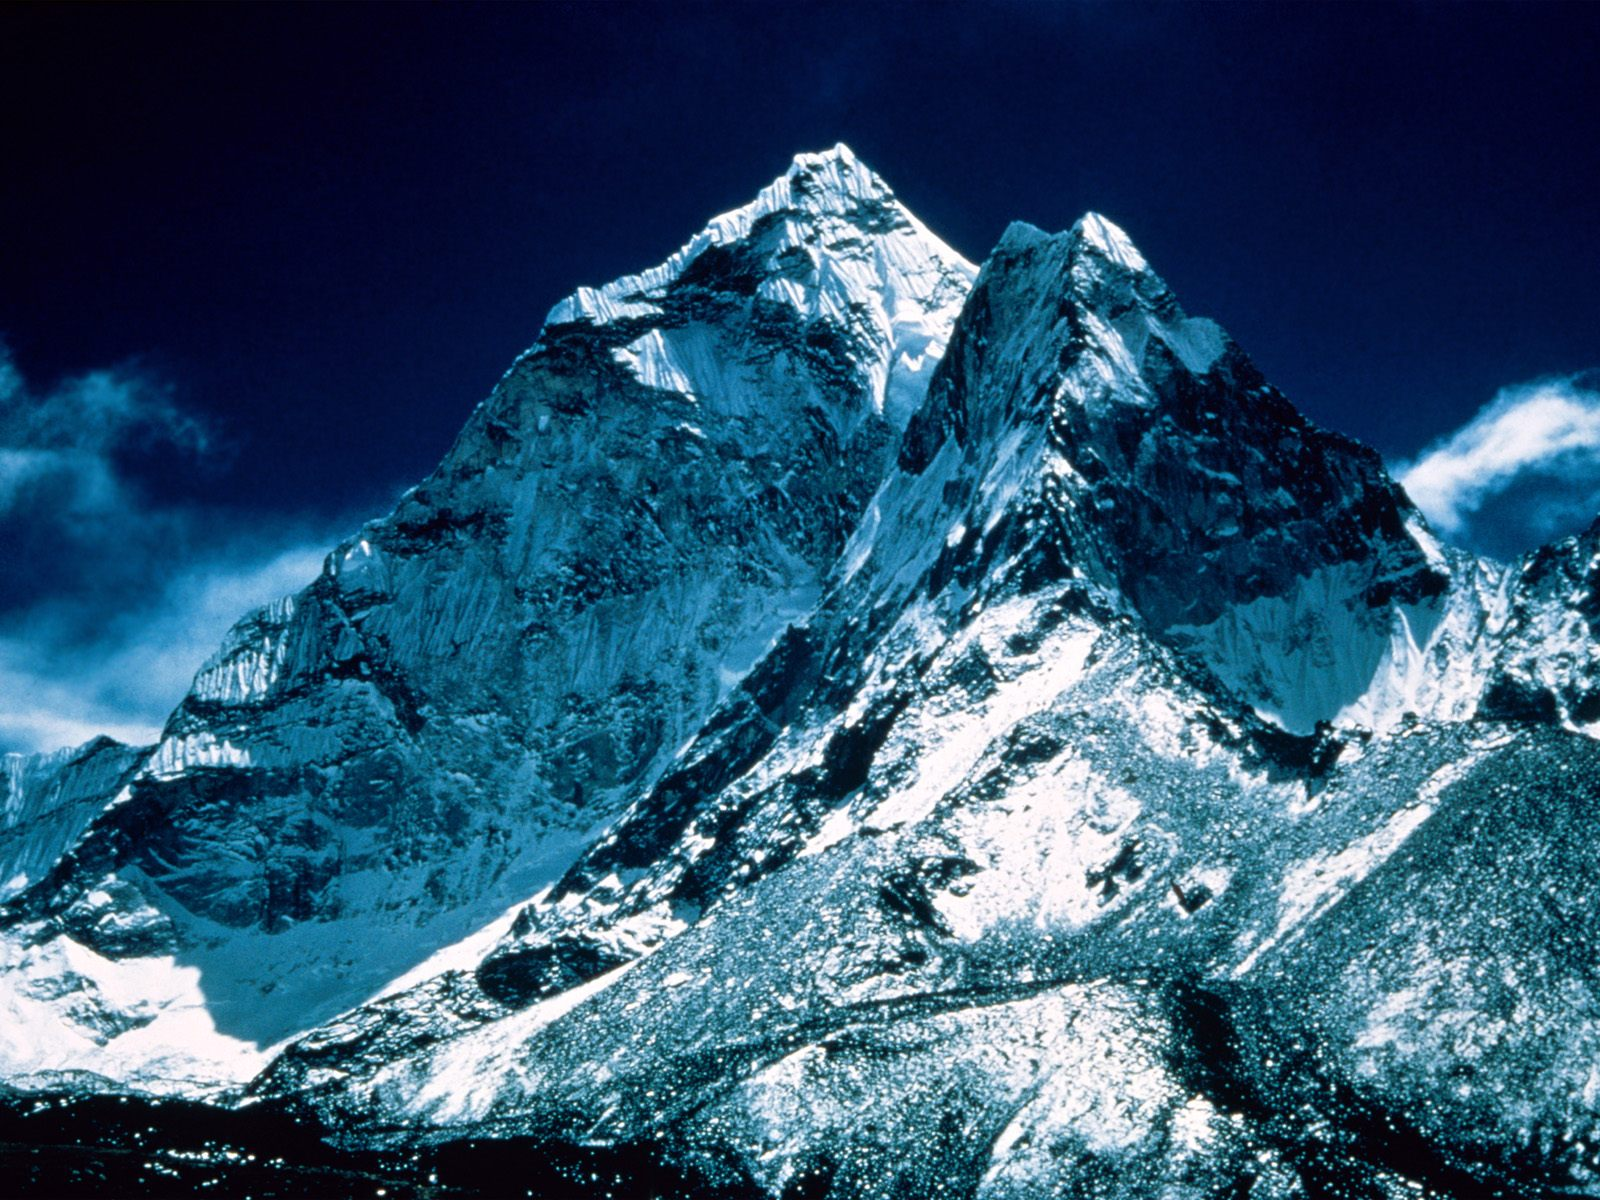 Everest everest is the highest mountain in the world with